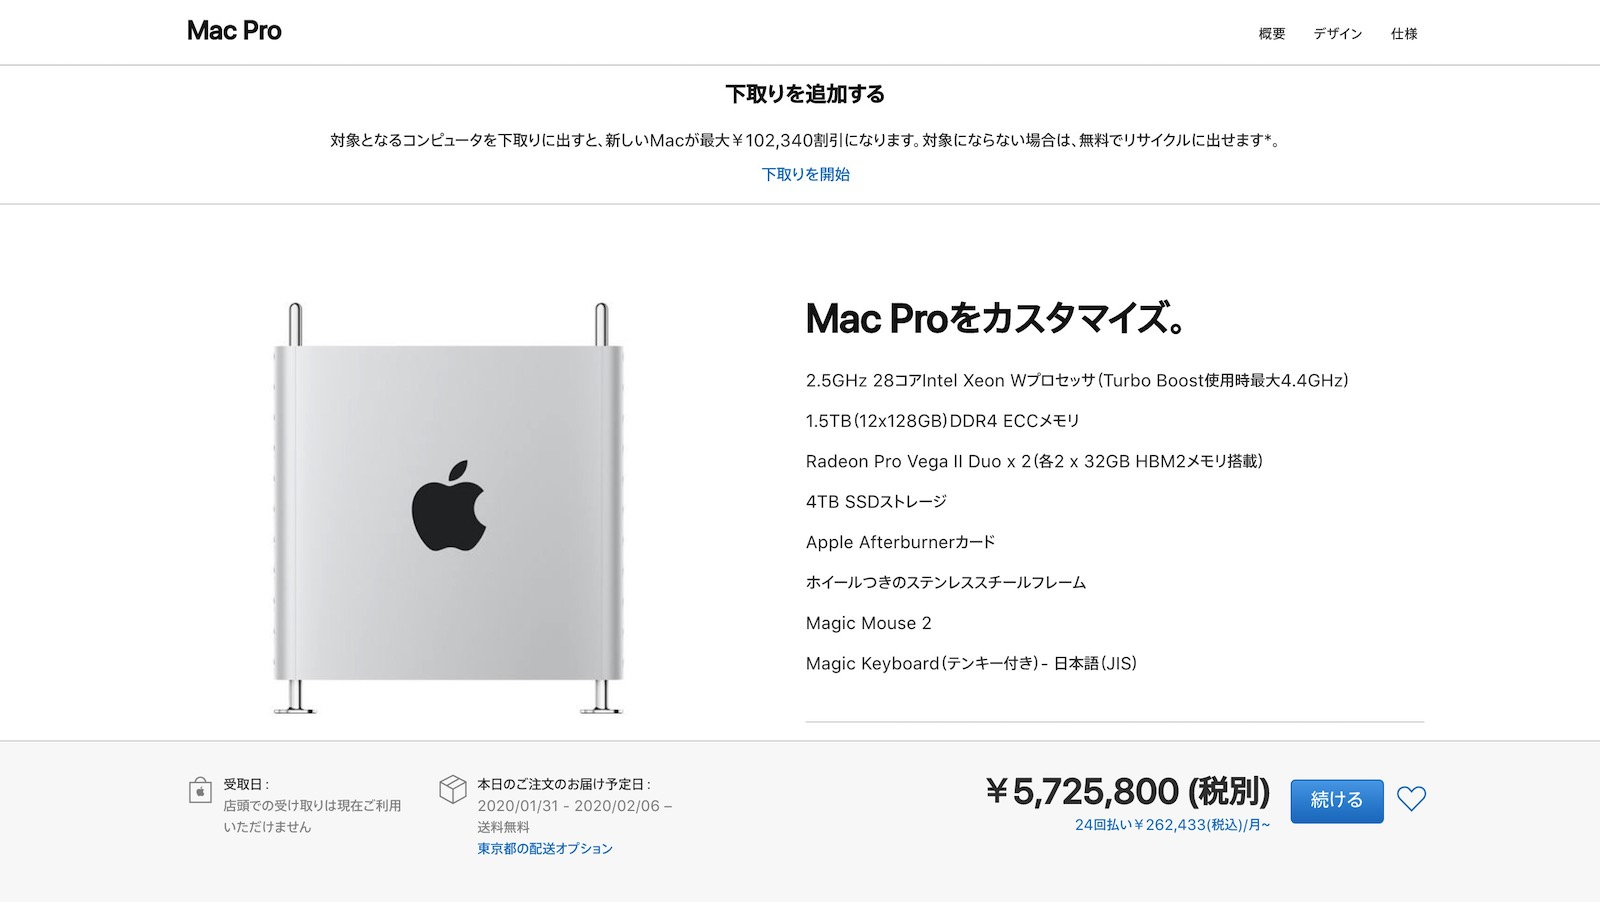 Mac Pro 2019 full spec model